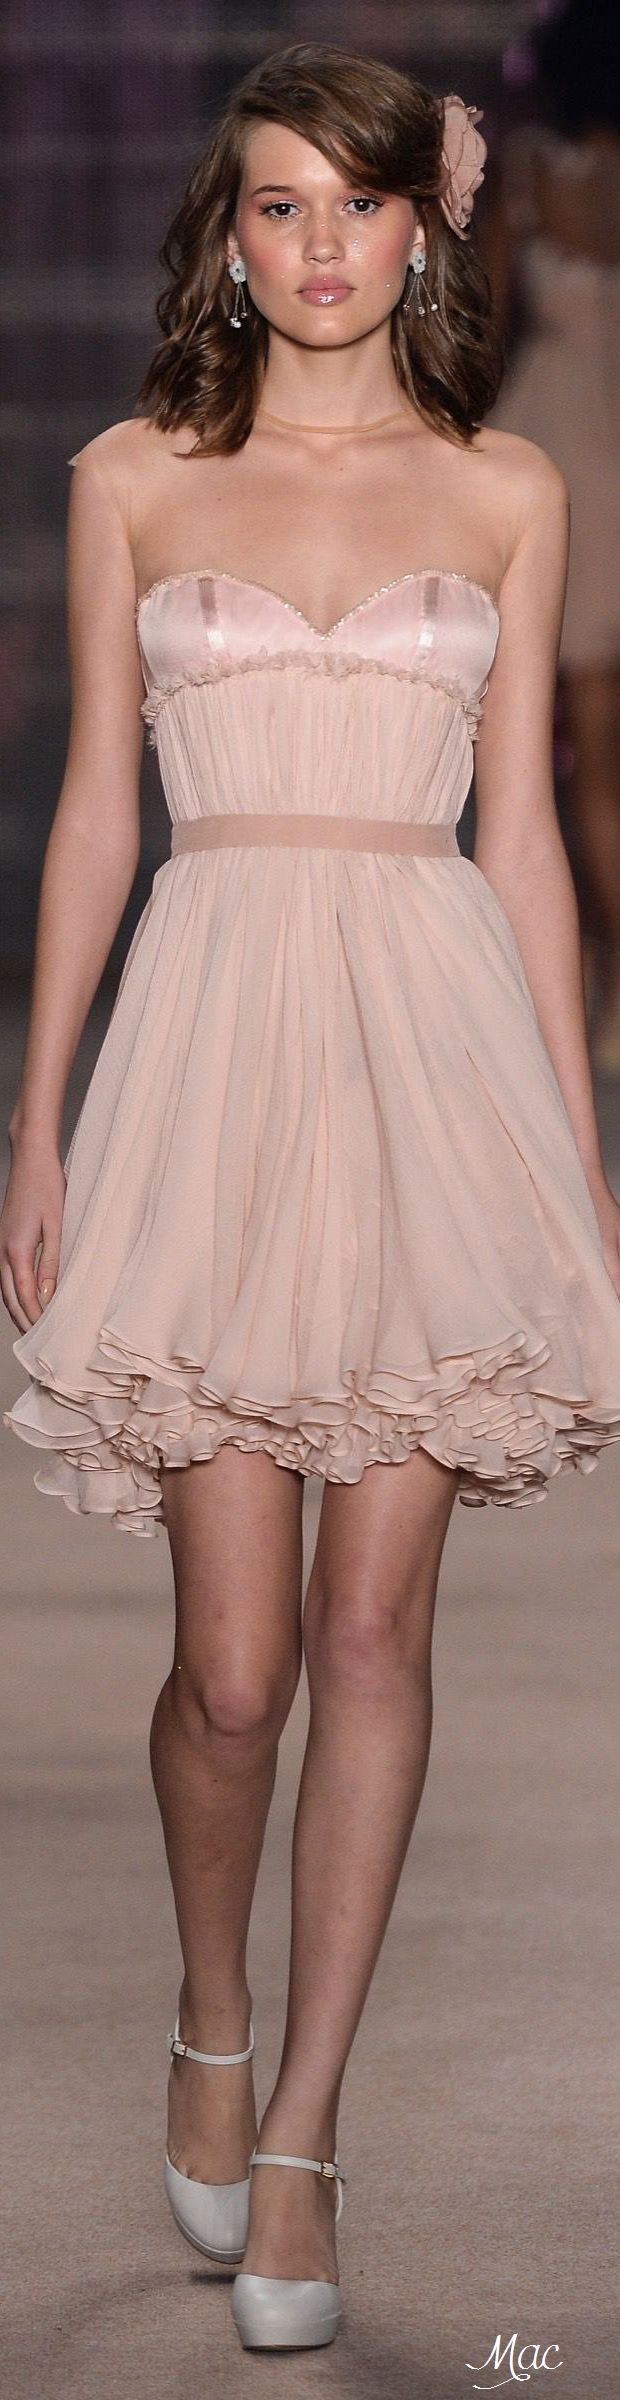 best dresses images on pinterest high fashion dream dress and